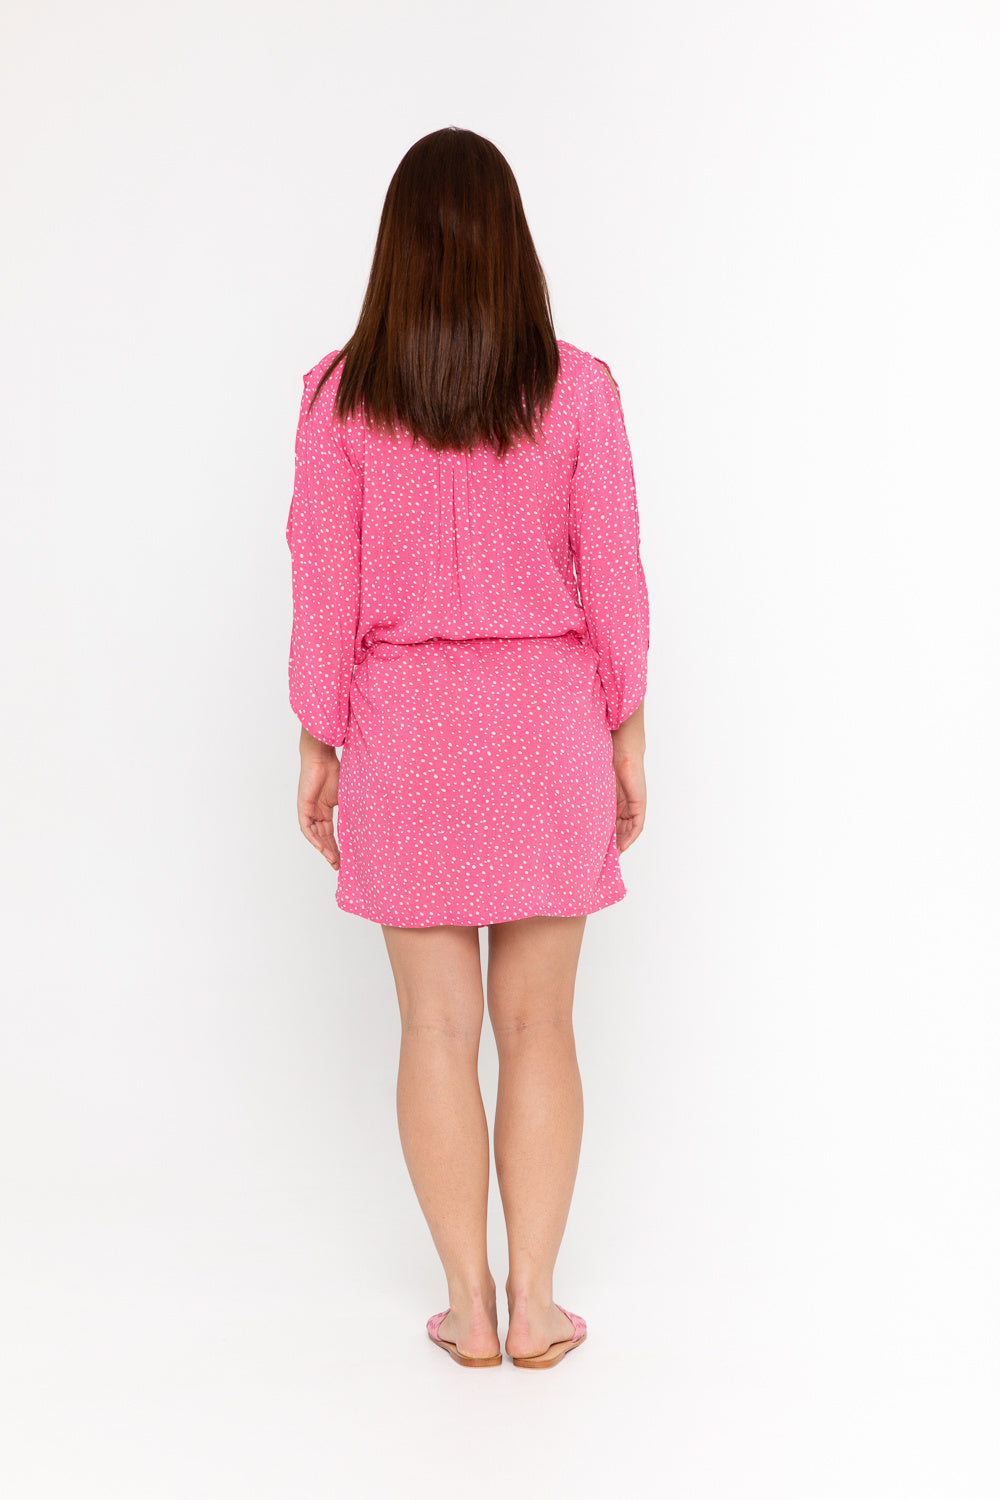 Dress Topsoul - Polka Dot Pink